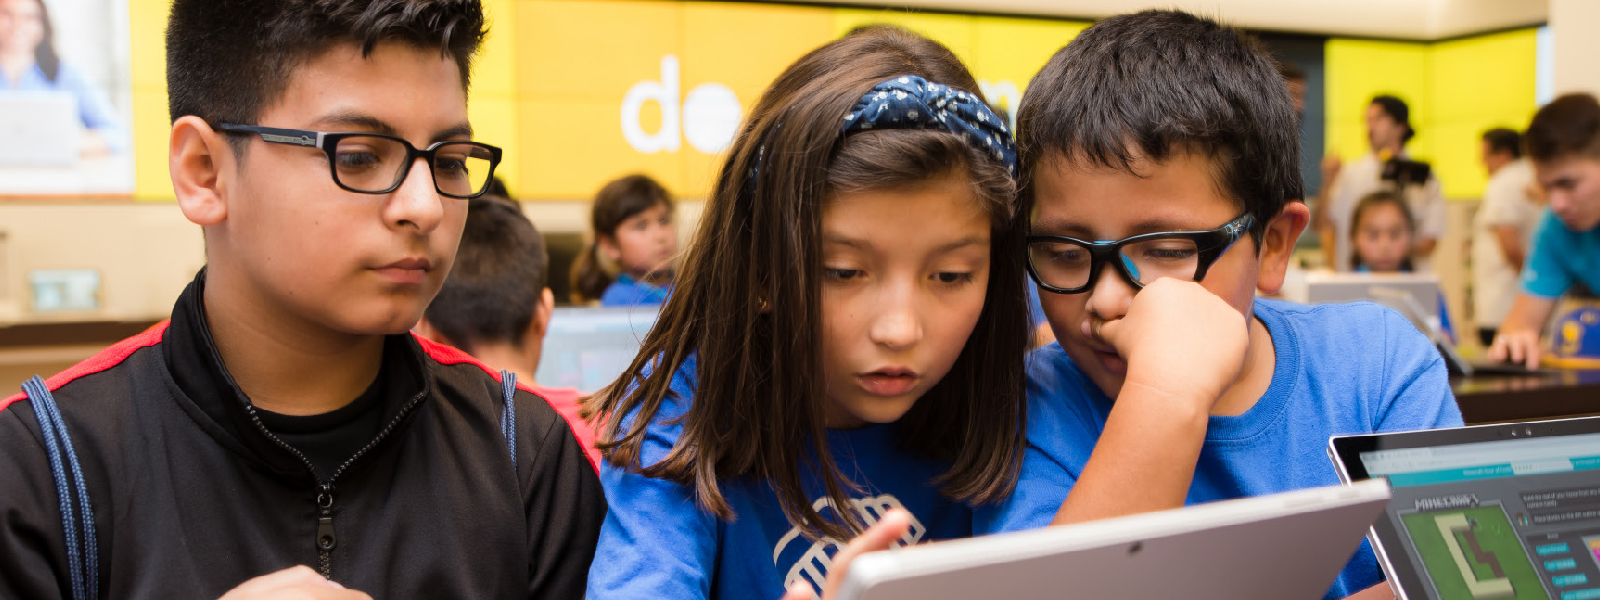 Three young students at Microsoft Store event.